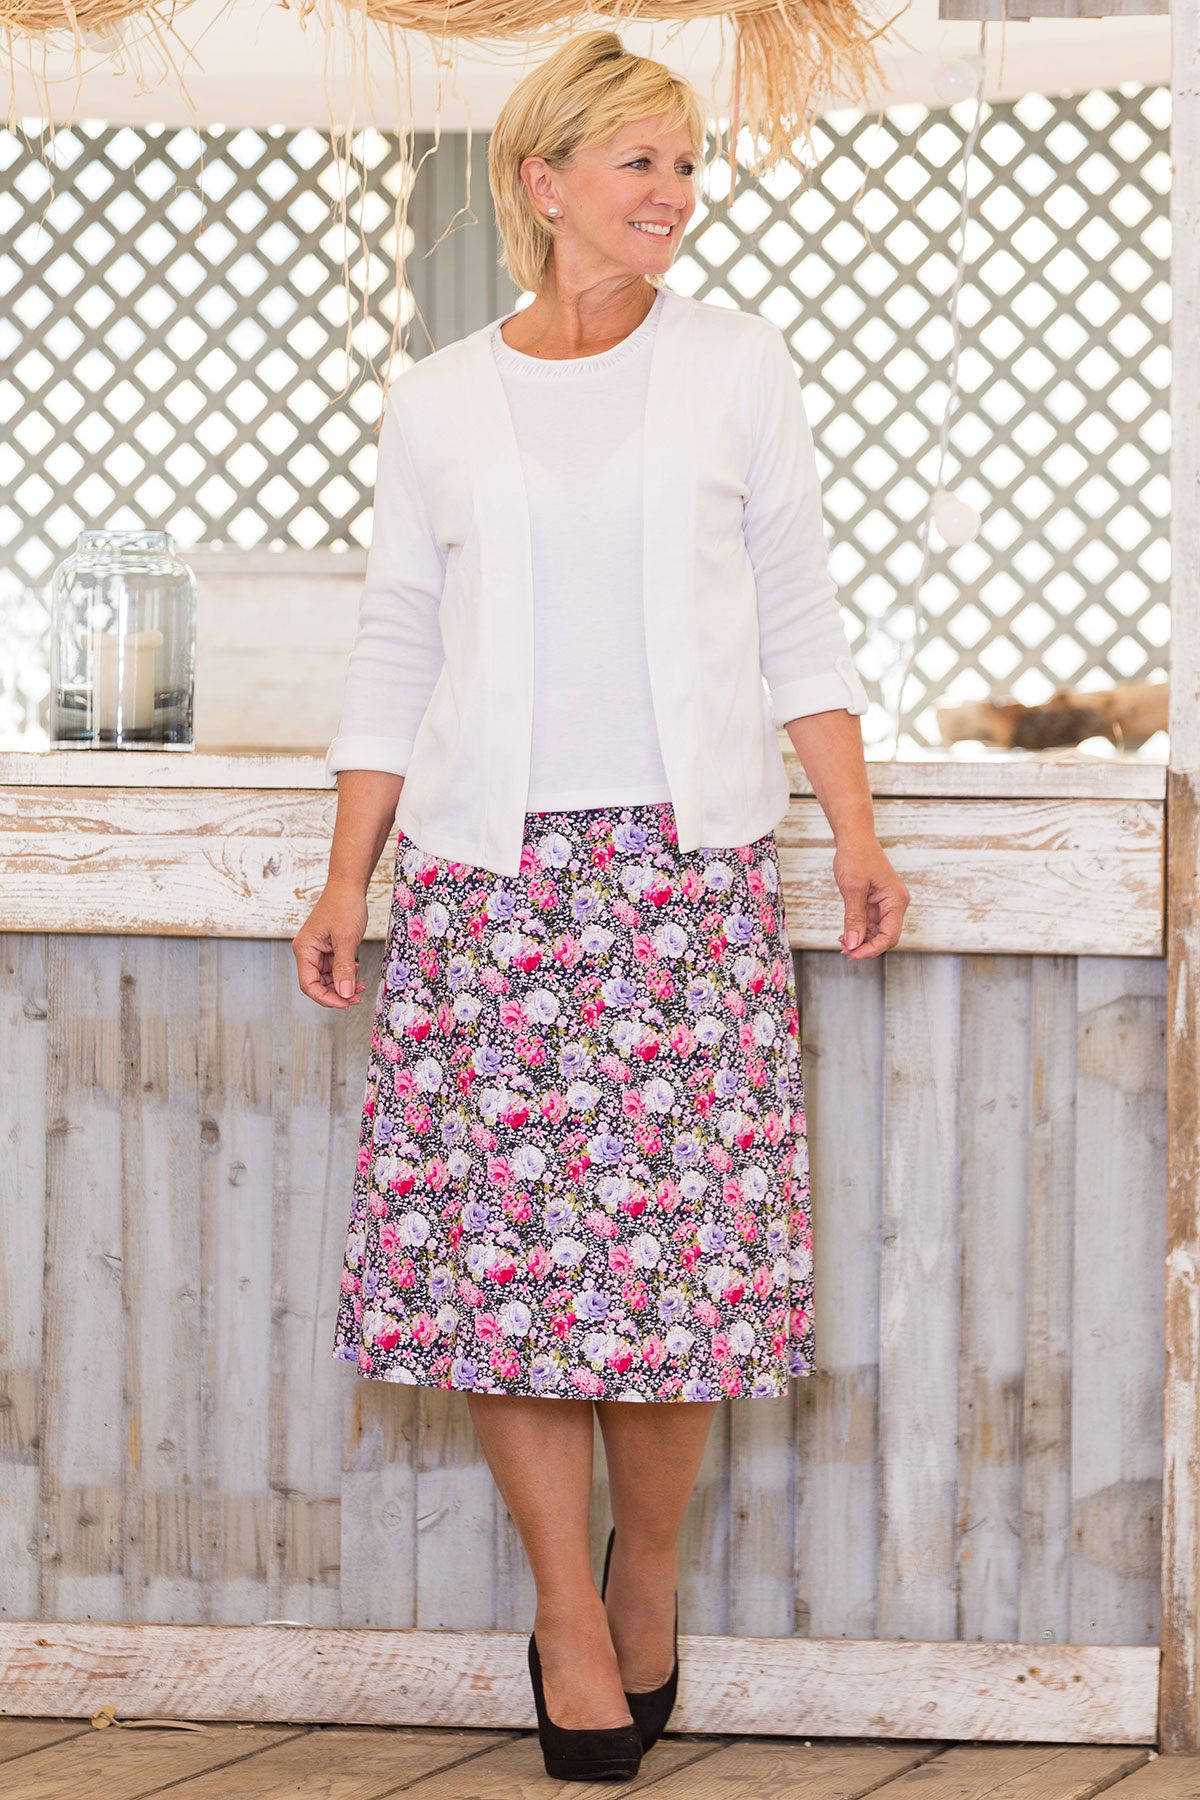 Ruched Neck T-Shirt, Edge To Edge Jersey Jacket & Pastel Rose Skirt